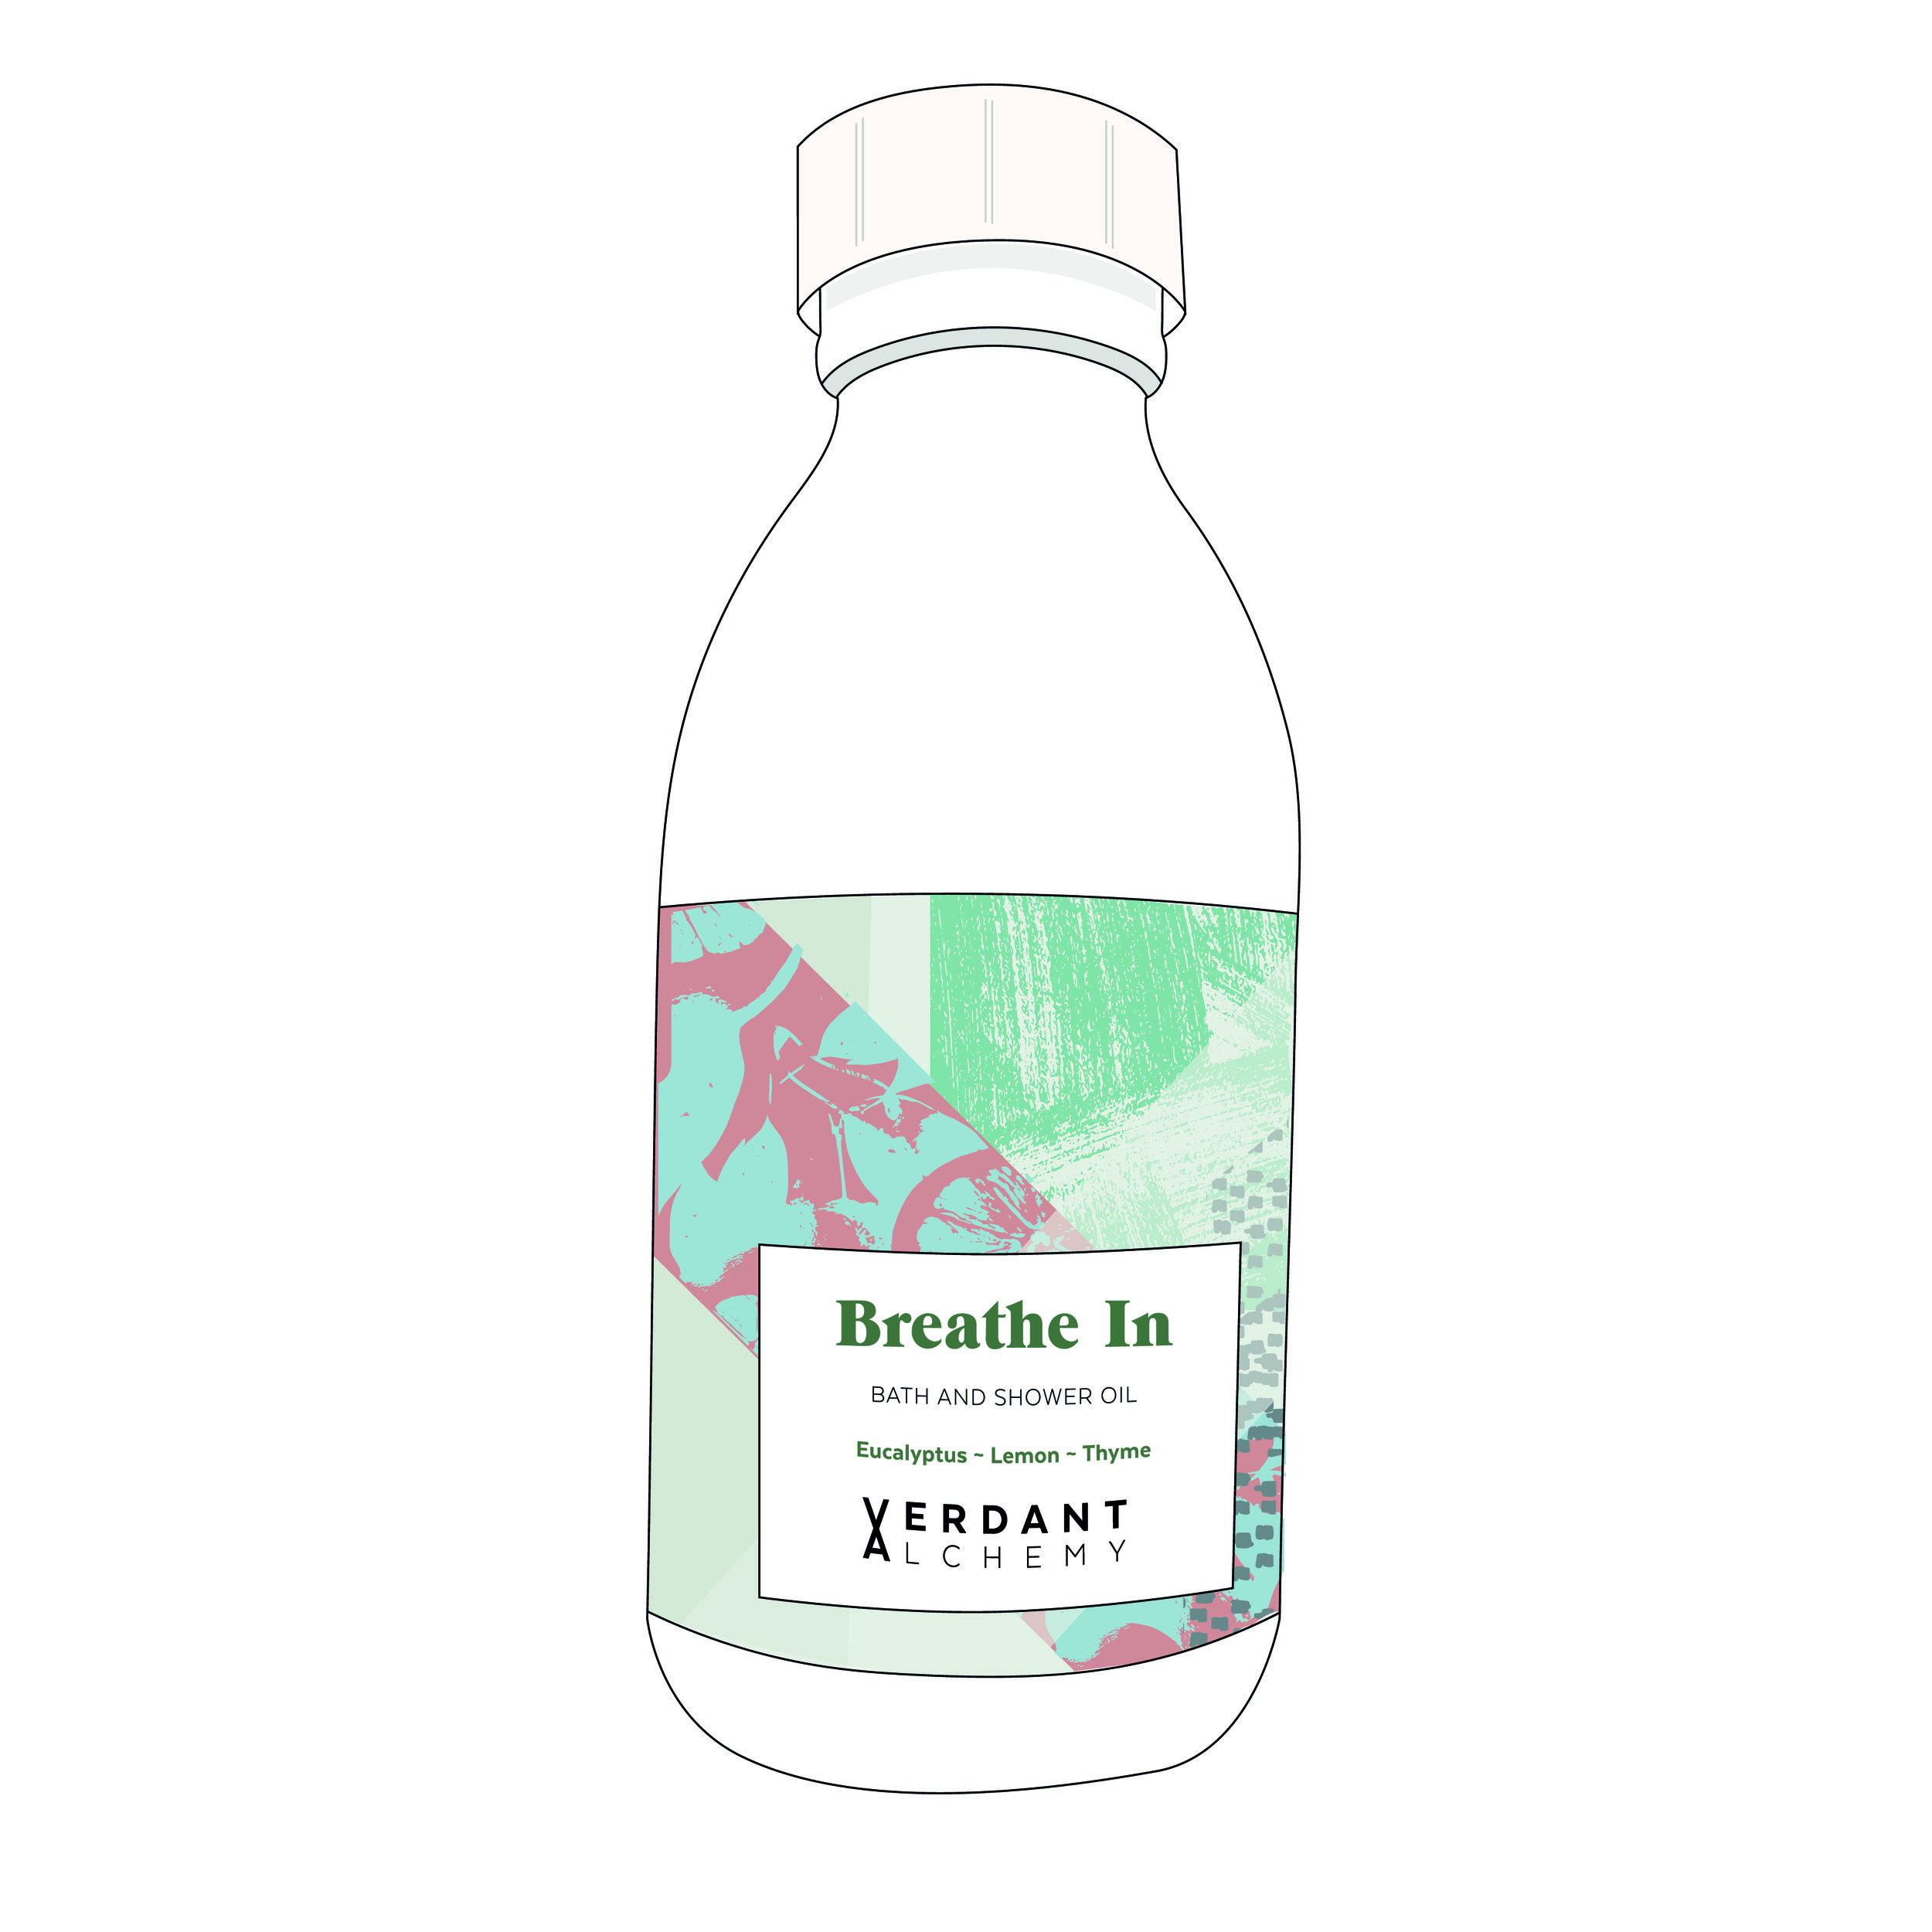 breathe in  bath and shower oil -01-01-01.jpg